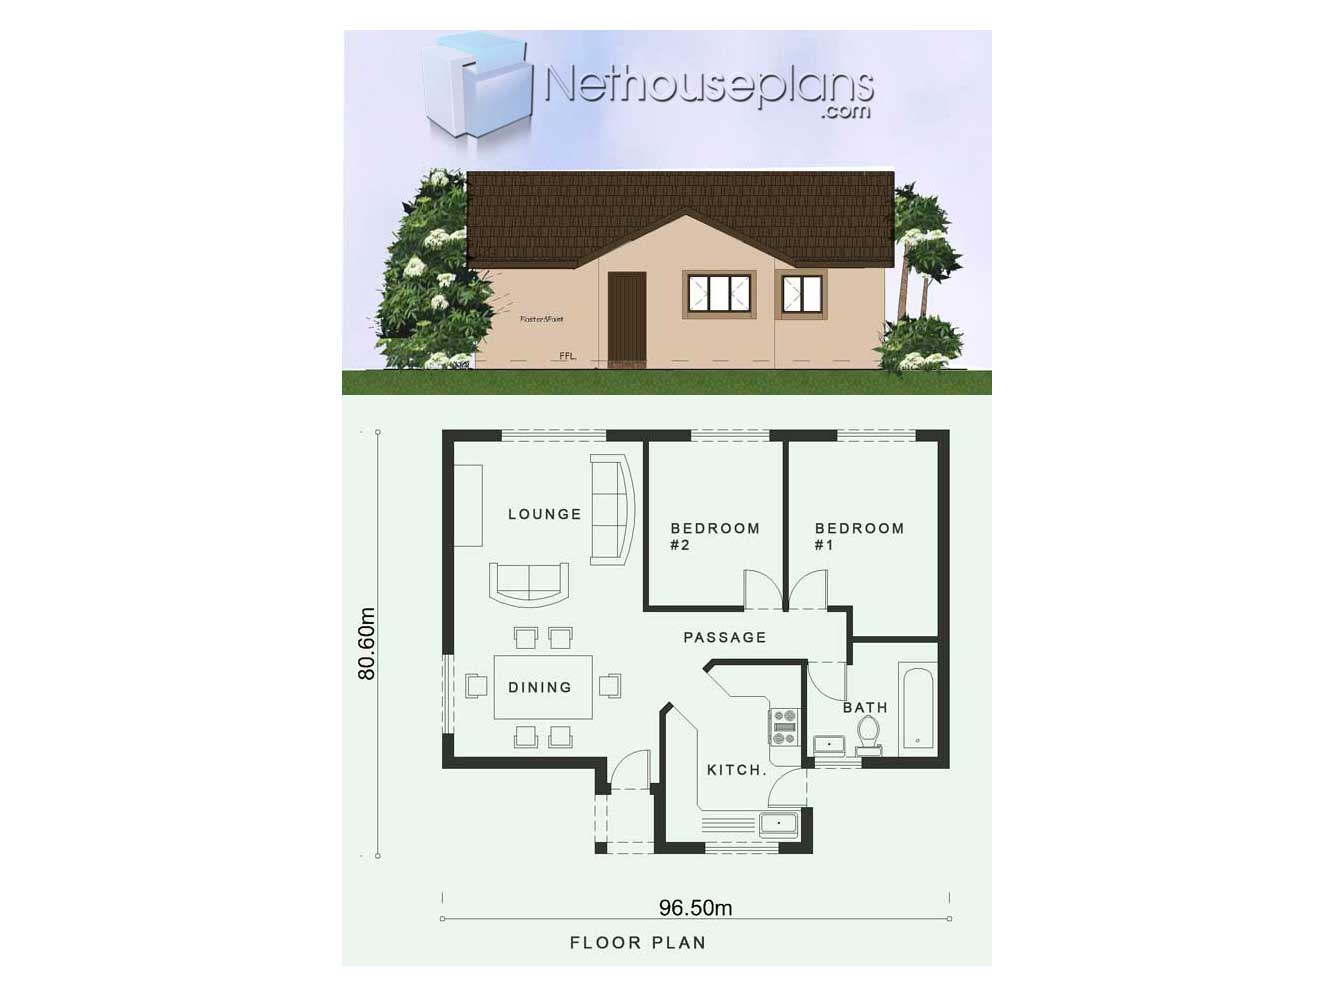 2 Room House Plans Low Cost 2 Bedroom House Plan Nethouseplansnethouseplans